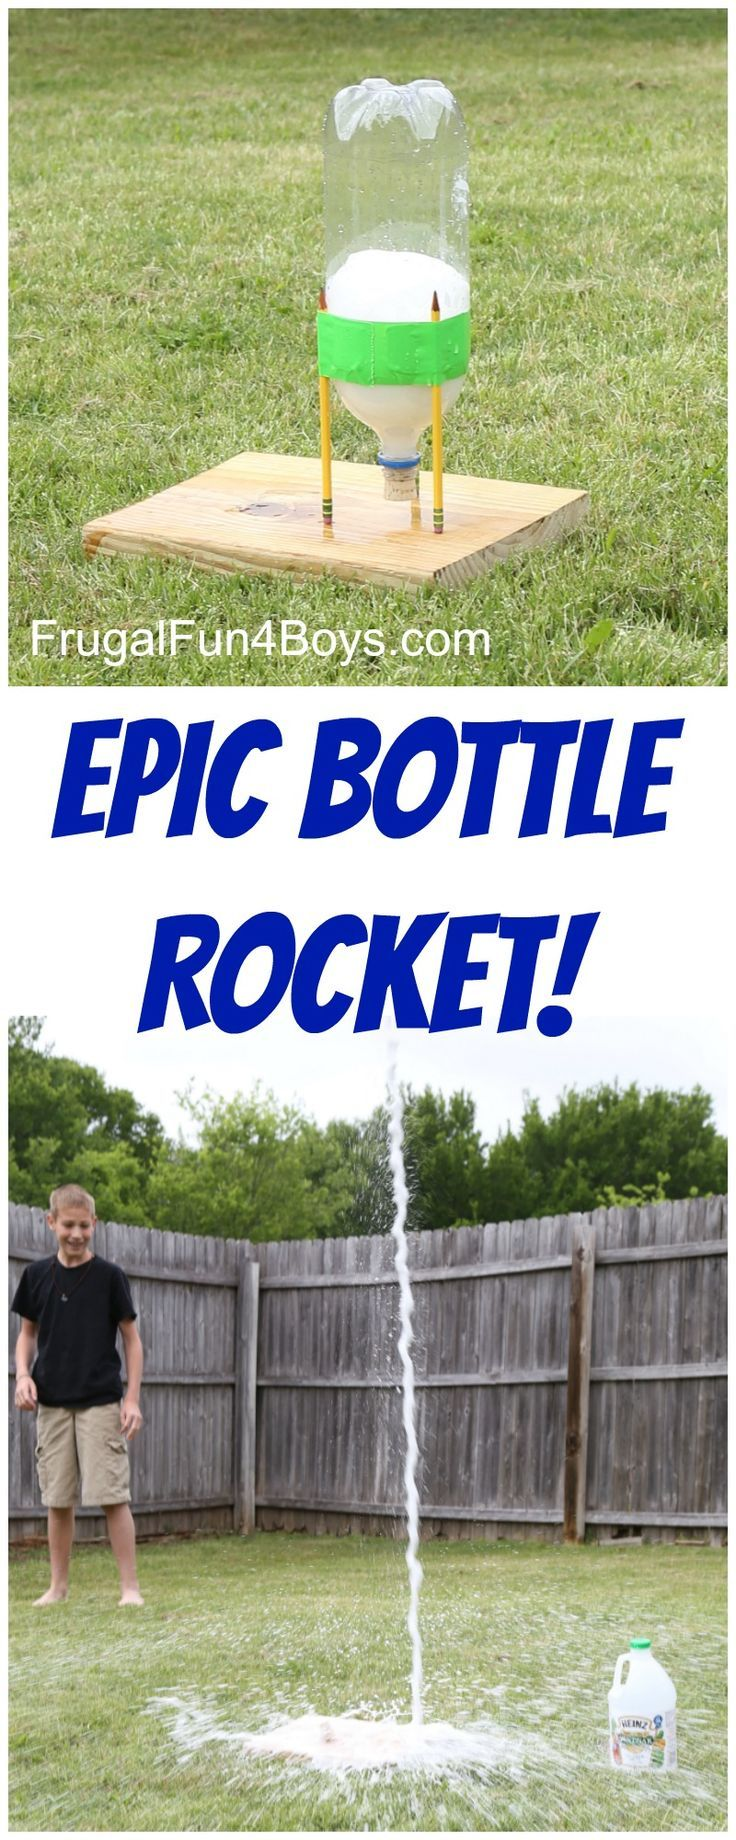 This EPIC Bottle Rocket Flew Higher Than our Two Story House! - Frugal Fun For Boys